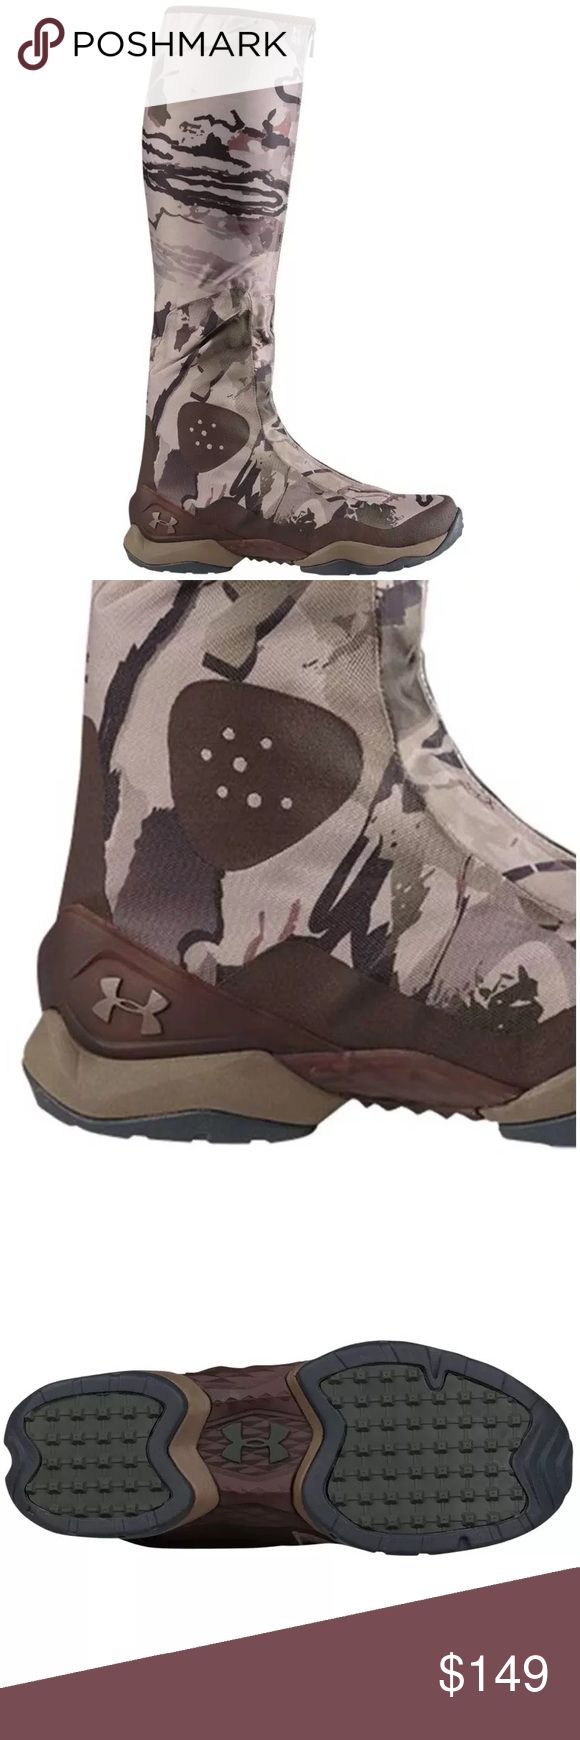 Under Armour OPS Hunter camo boots Brand New no box Under Armour Ops Hunter Boot Ridge Reaper Camo Barren Size: Men's 8.5 or 9  Innerboot constructed with breathable, waterproof membrane Water resistant external shell and zipper construction Scent Control lining traps & suppresses odors Cupron Anti Fungal Pro Fibers reduce odor & kill 99.9% of athlete's foot fungus after 12 hours of contact with the sockliner Molded EVA midsole with TPU shank for added stability High abrasion rubber outsole…